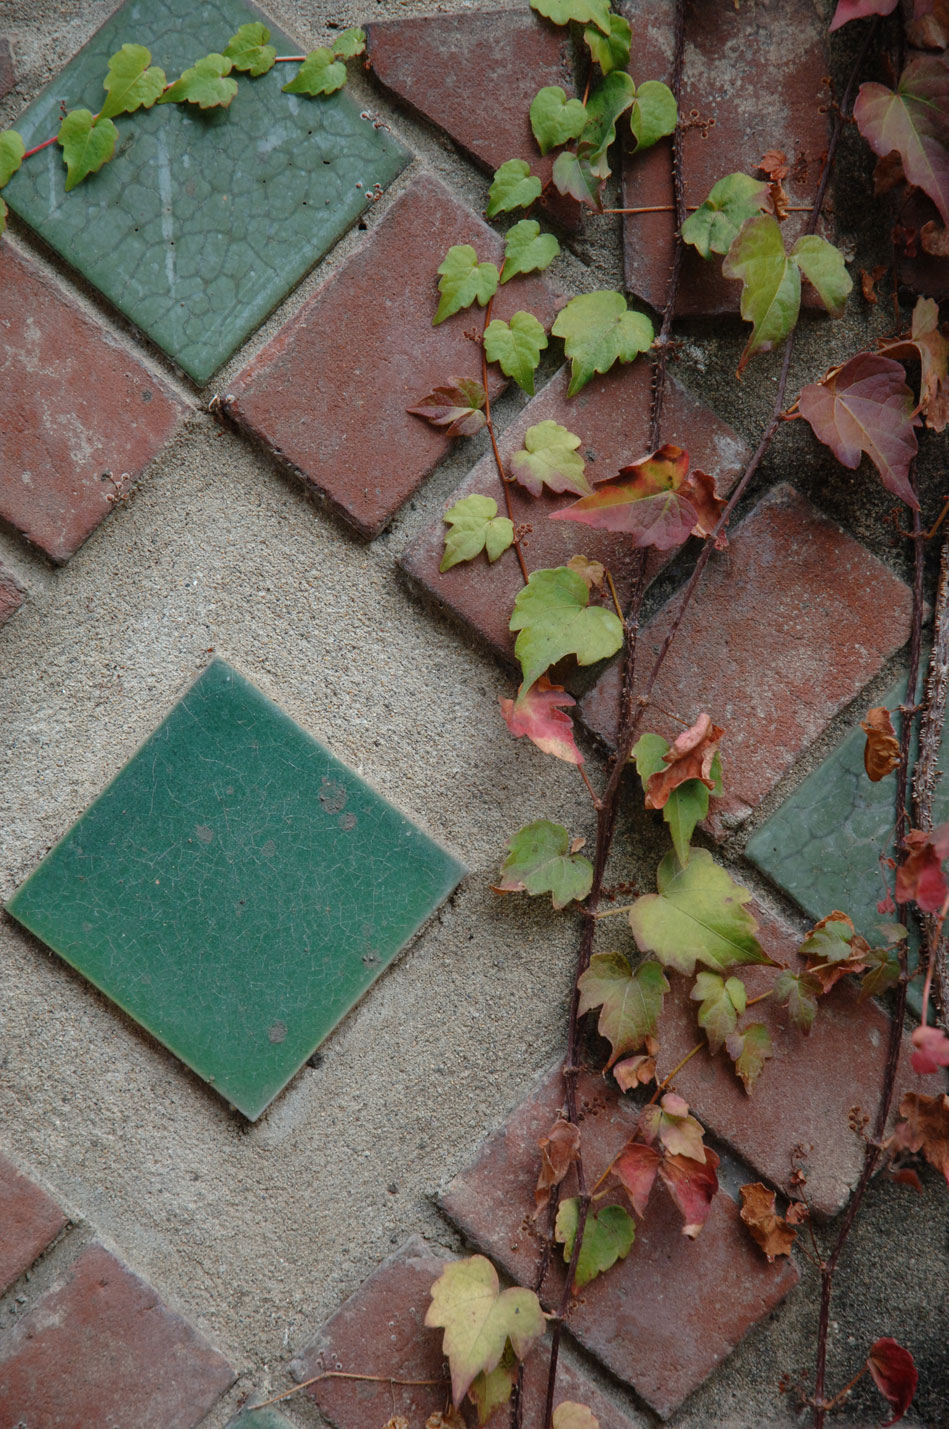 admissions tile and ivy image